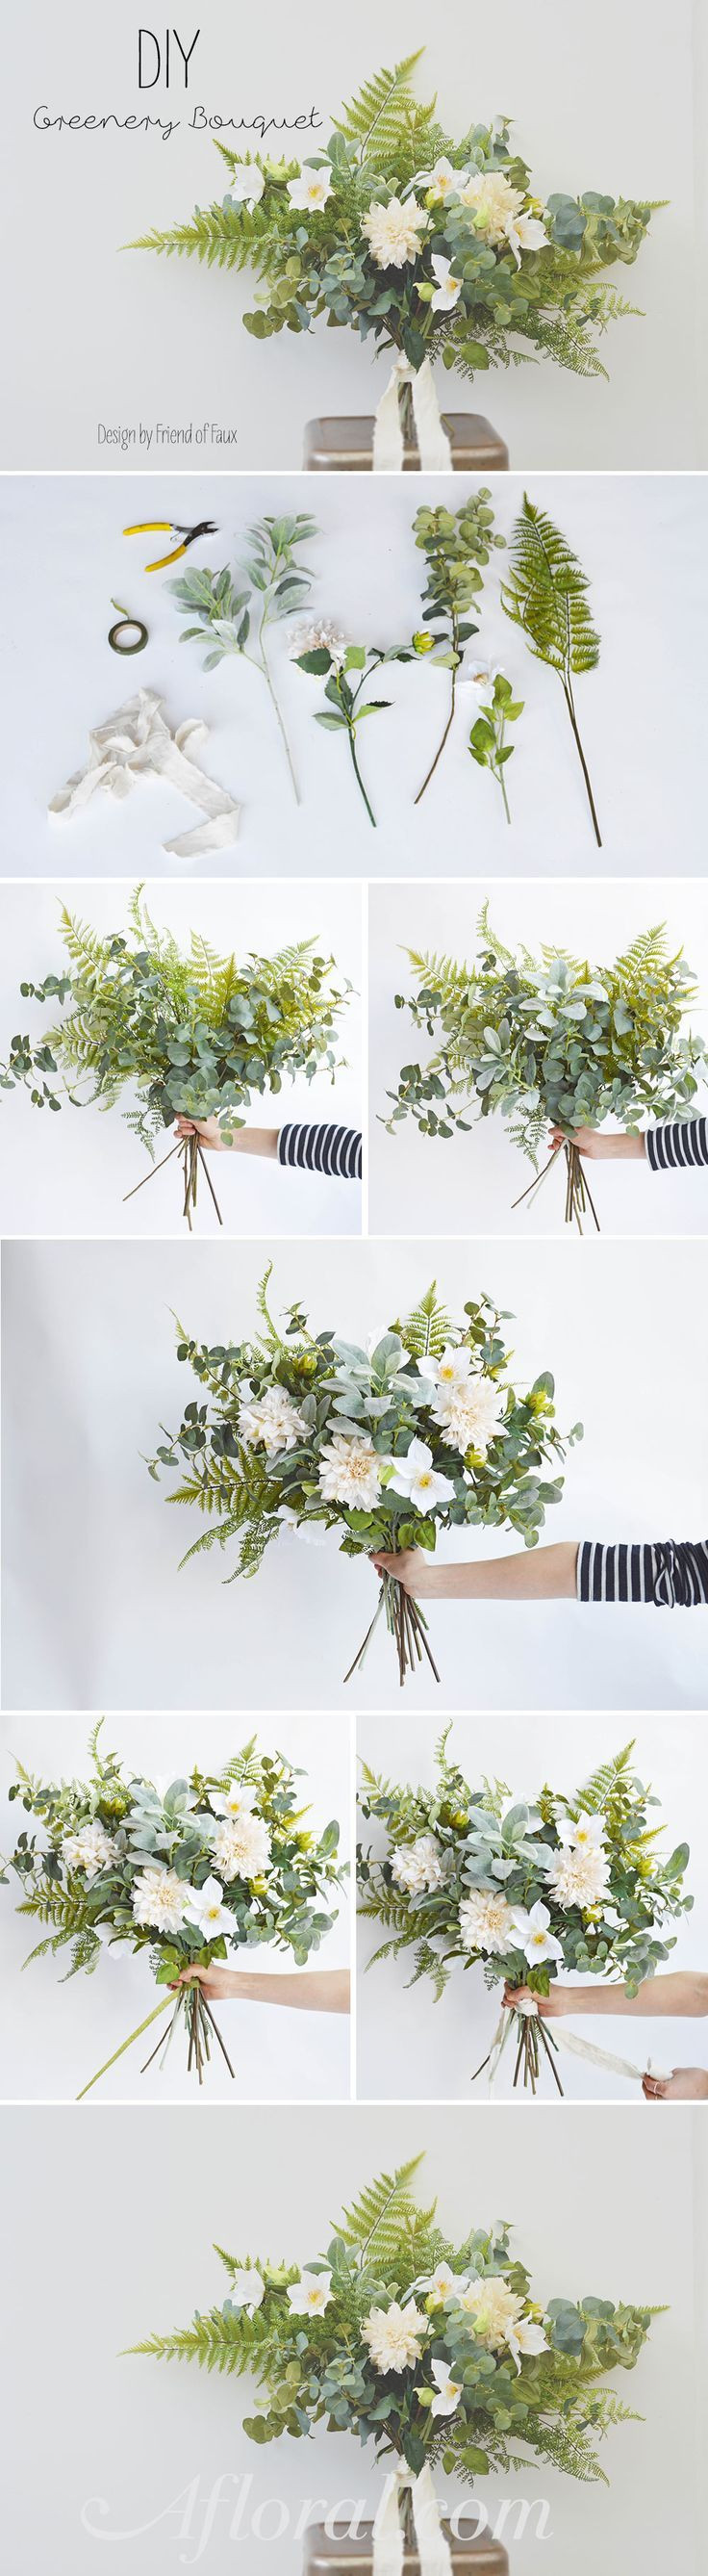 DIY Greenery Bouquet